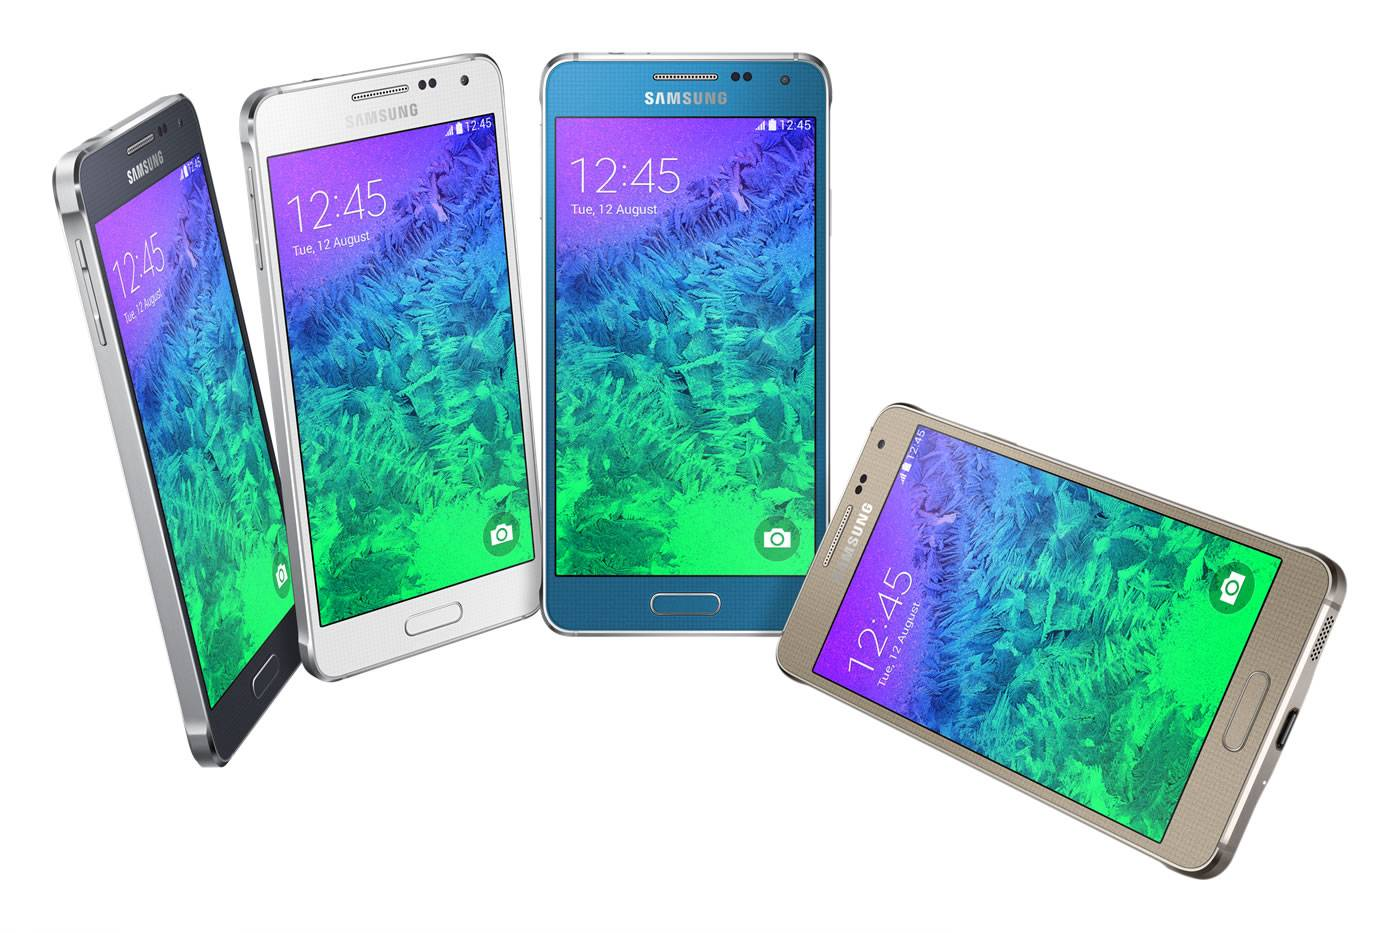 Galaxy Alpha announced with new metal frame that you wanted